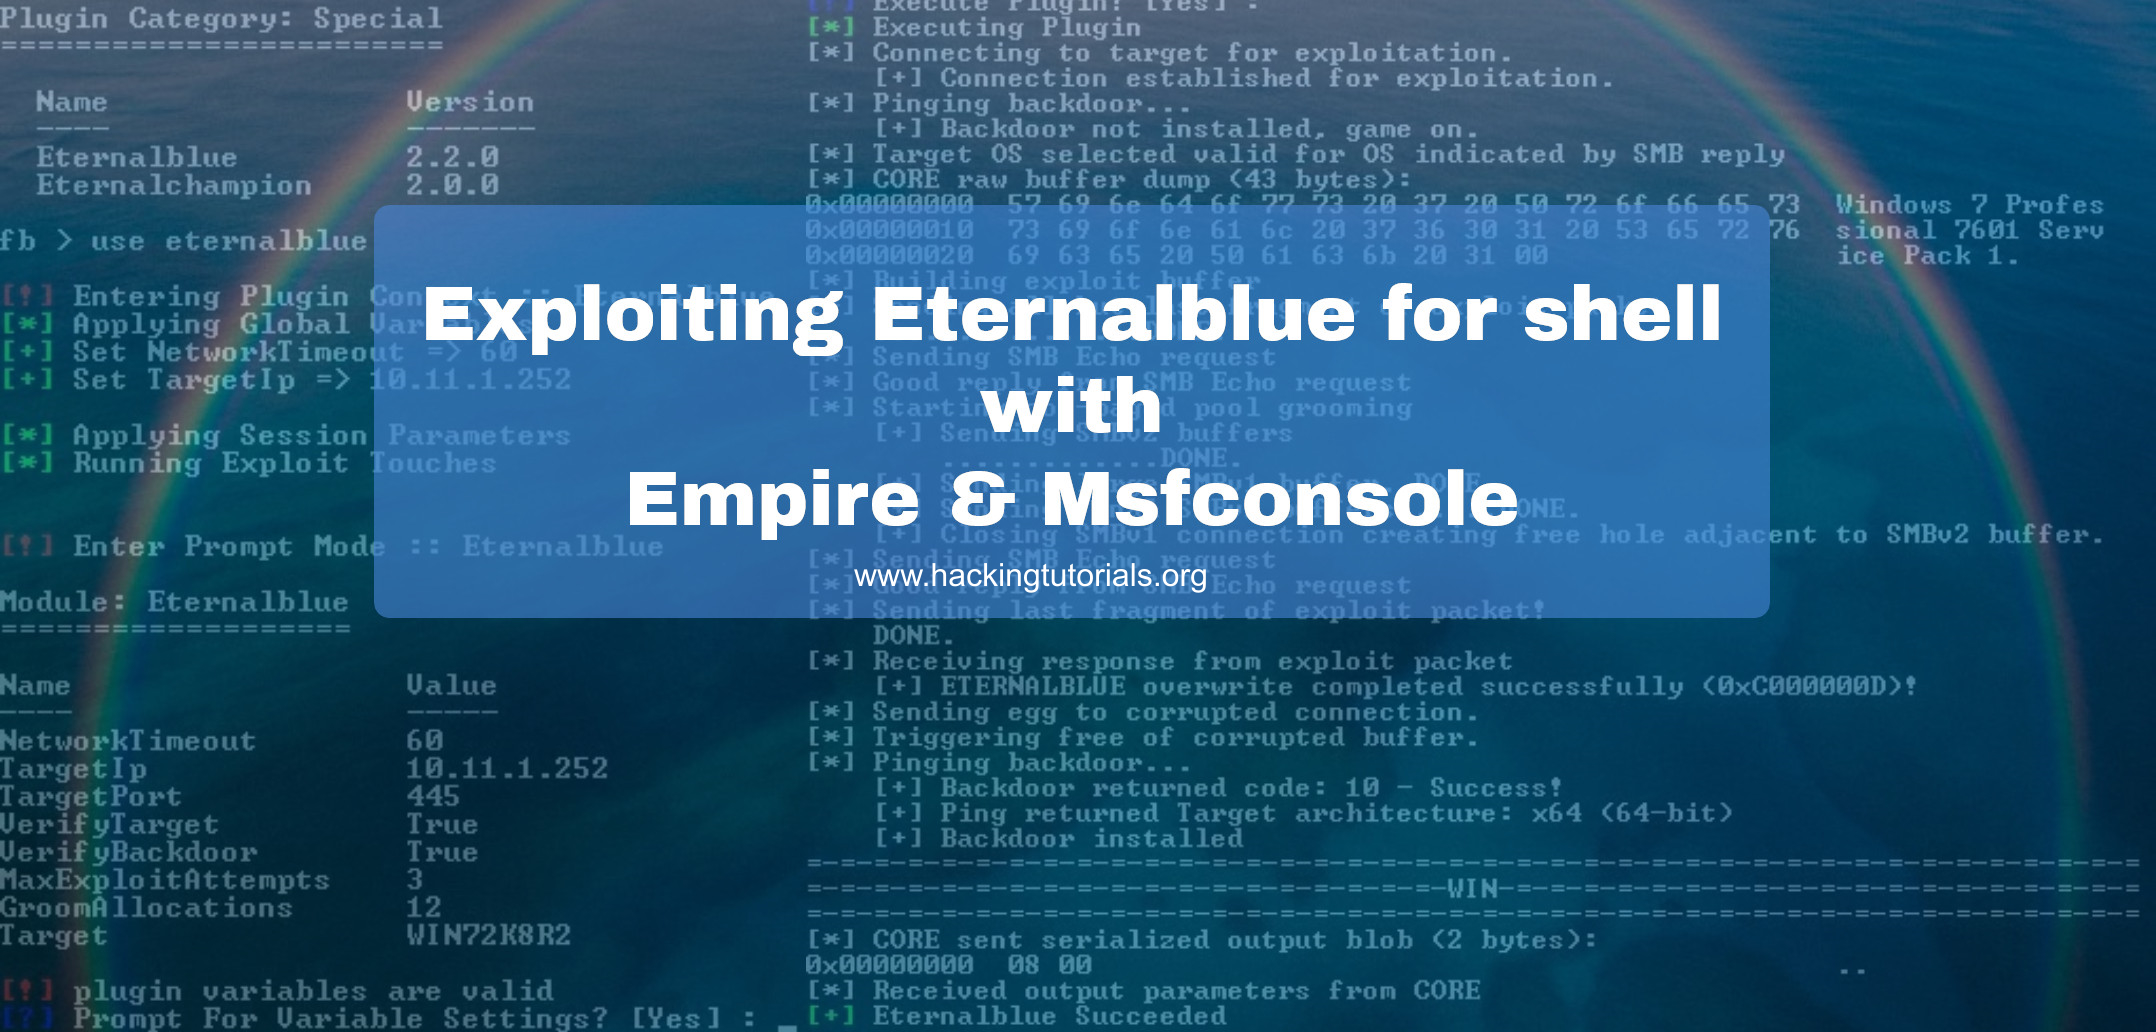 Exploiting Eternalblue for shell with Empire & Msfconsole - Hacking